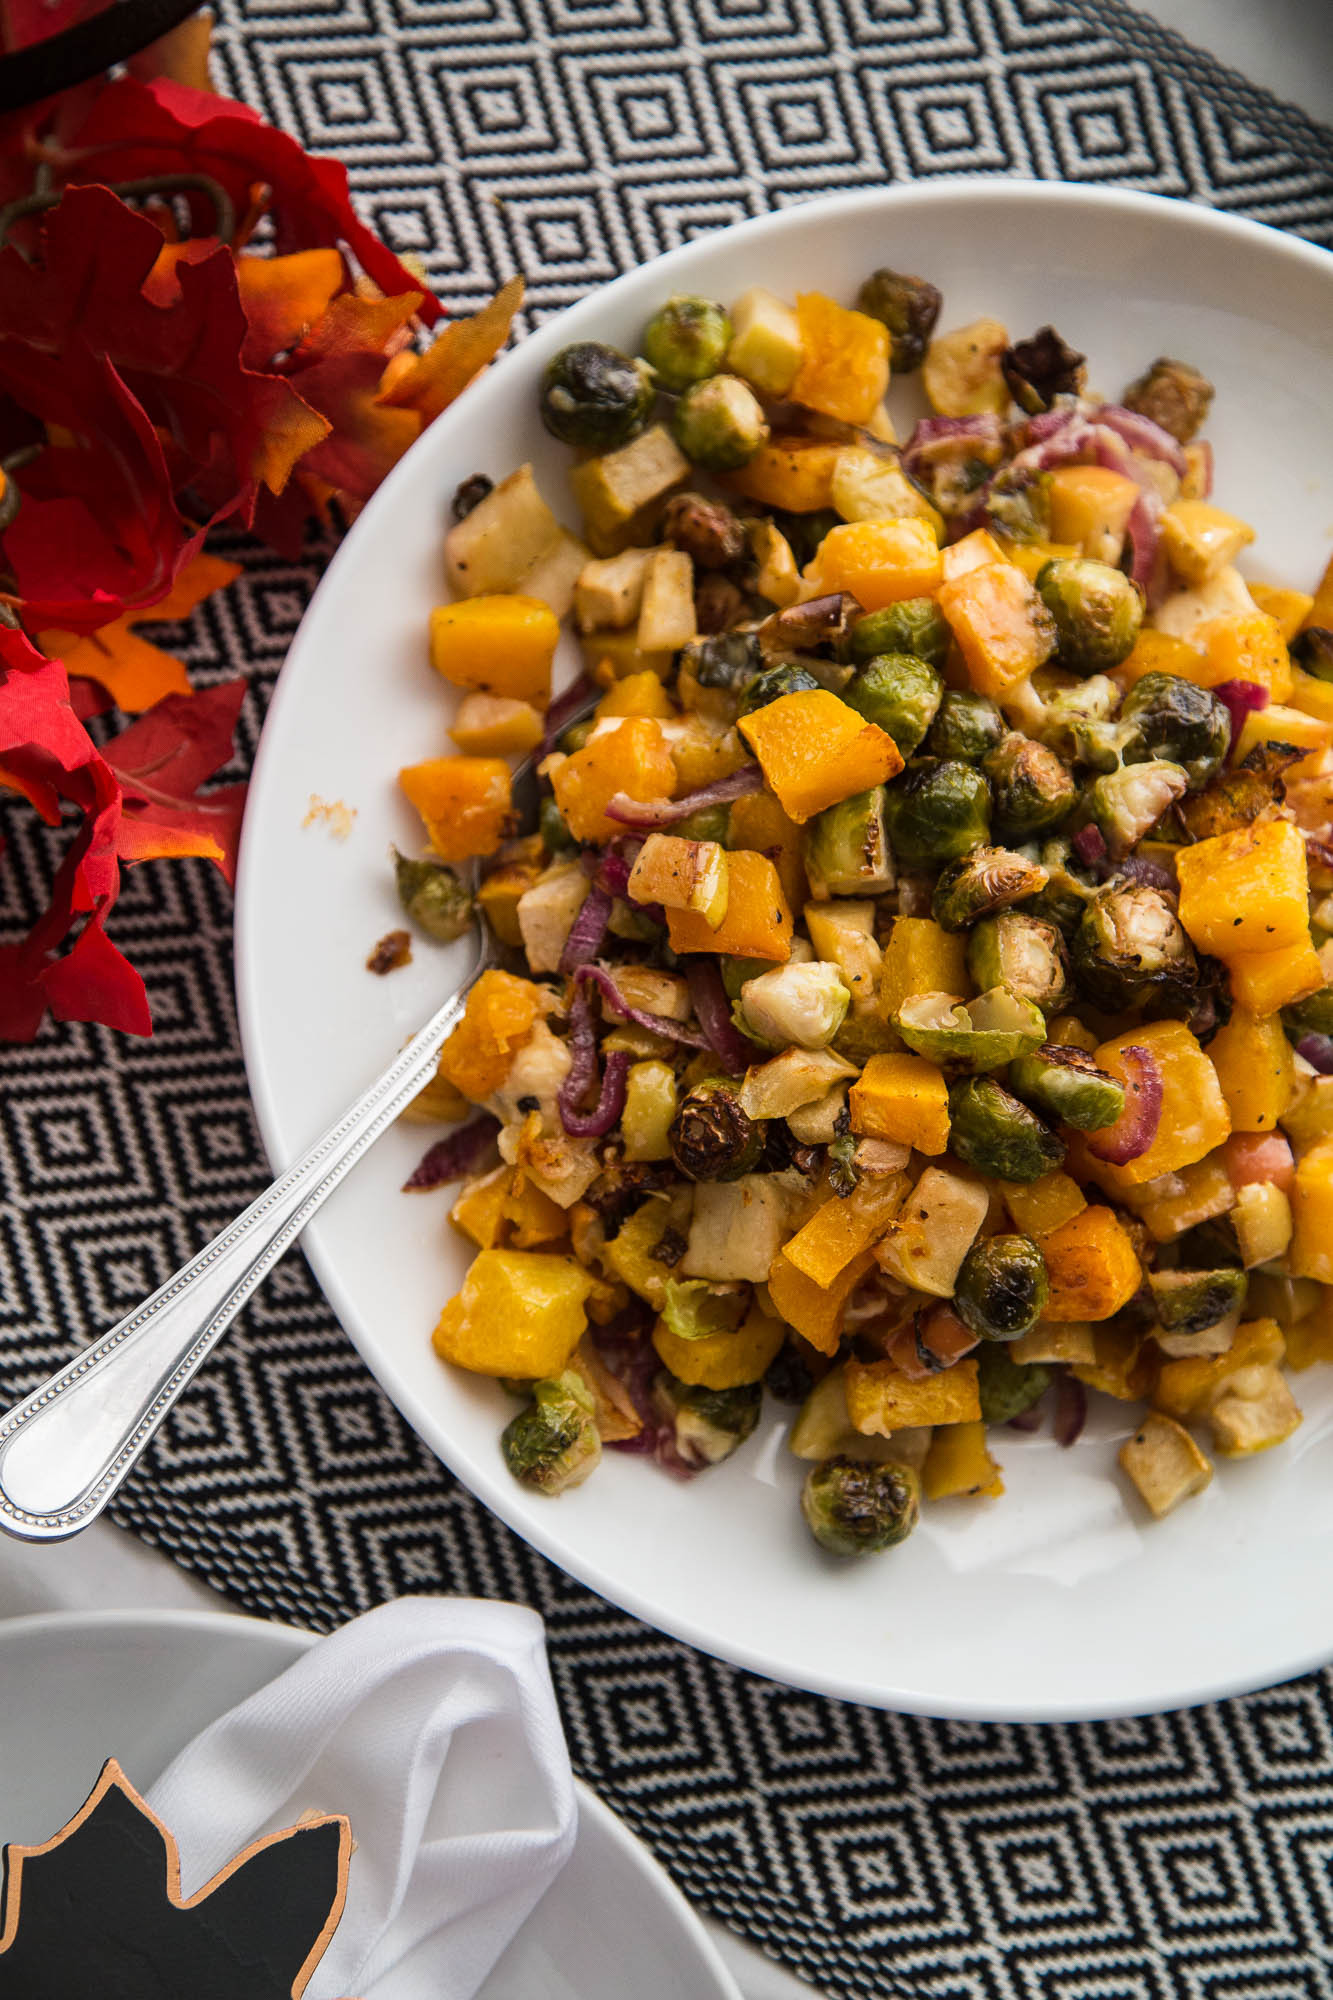 Roasted Fall Vegetables  Roasted Fall Ve ables with Apples & Gouda Perry s Plate